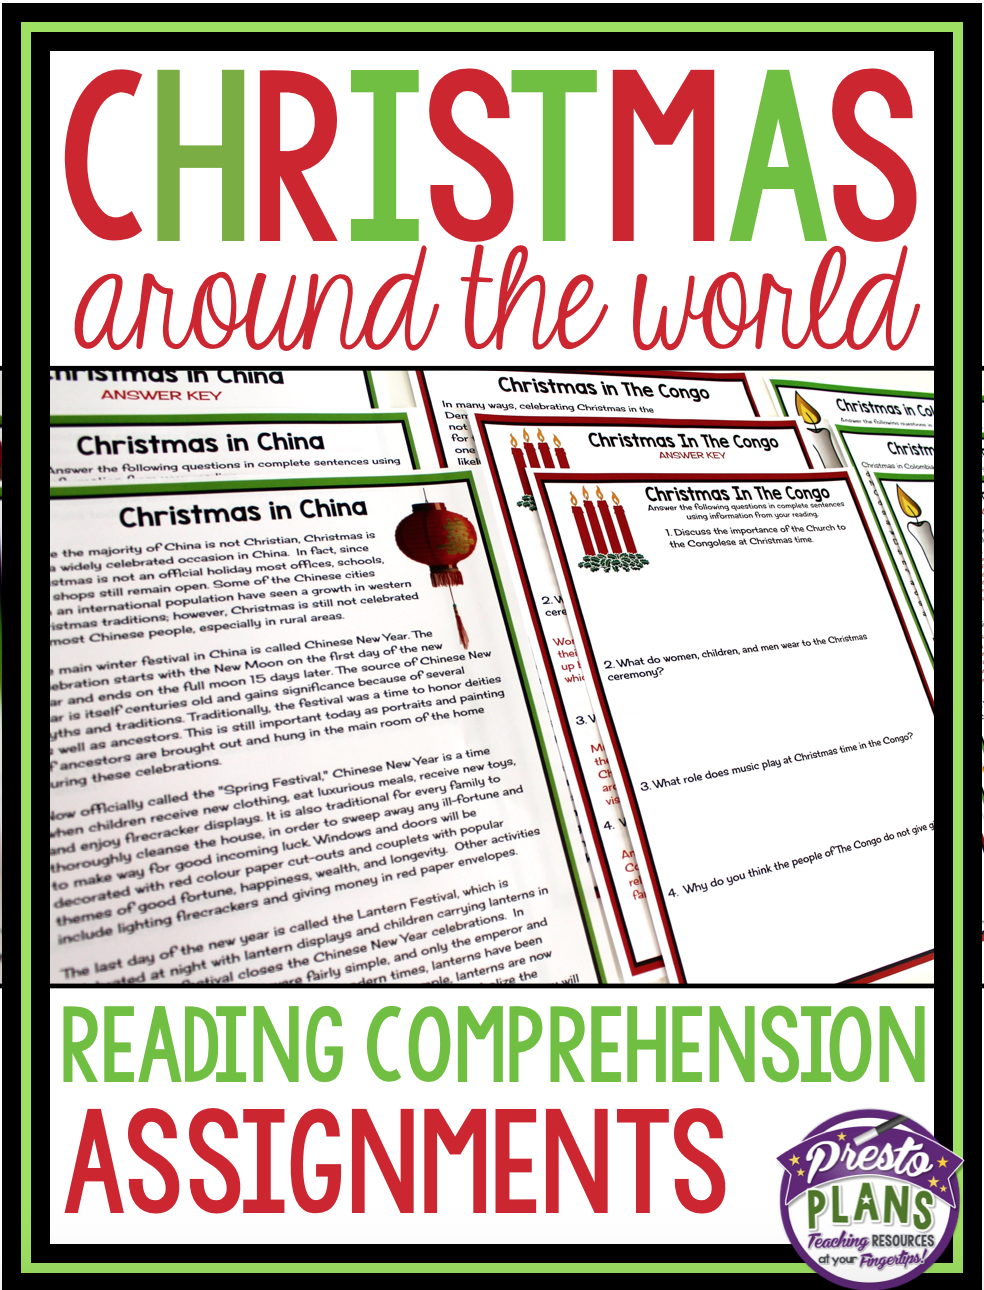 CHRISTMAS AROUND THE WORLD READING COMPREHENSION   Reading comprehension [ 1290 x 984 Pixel ]